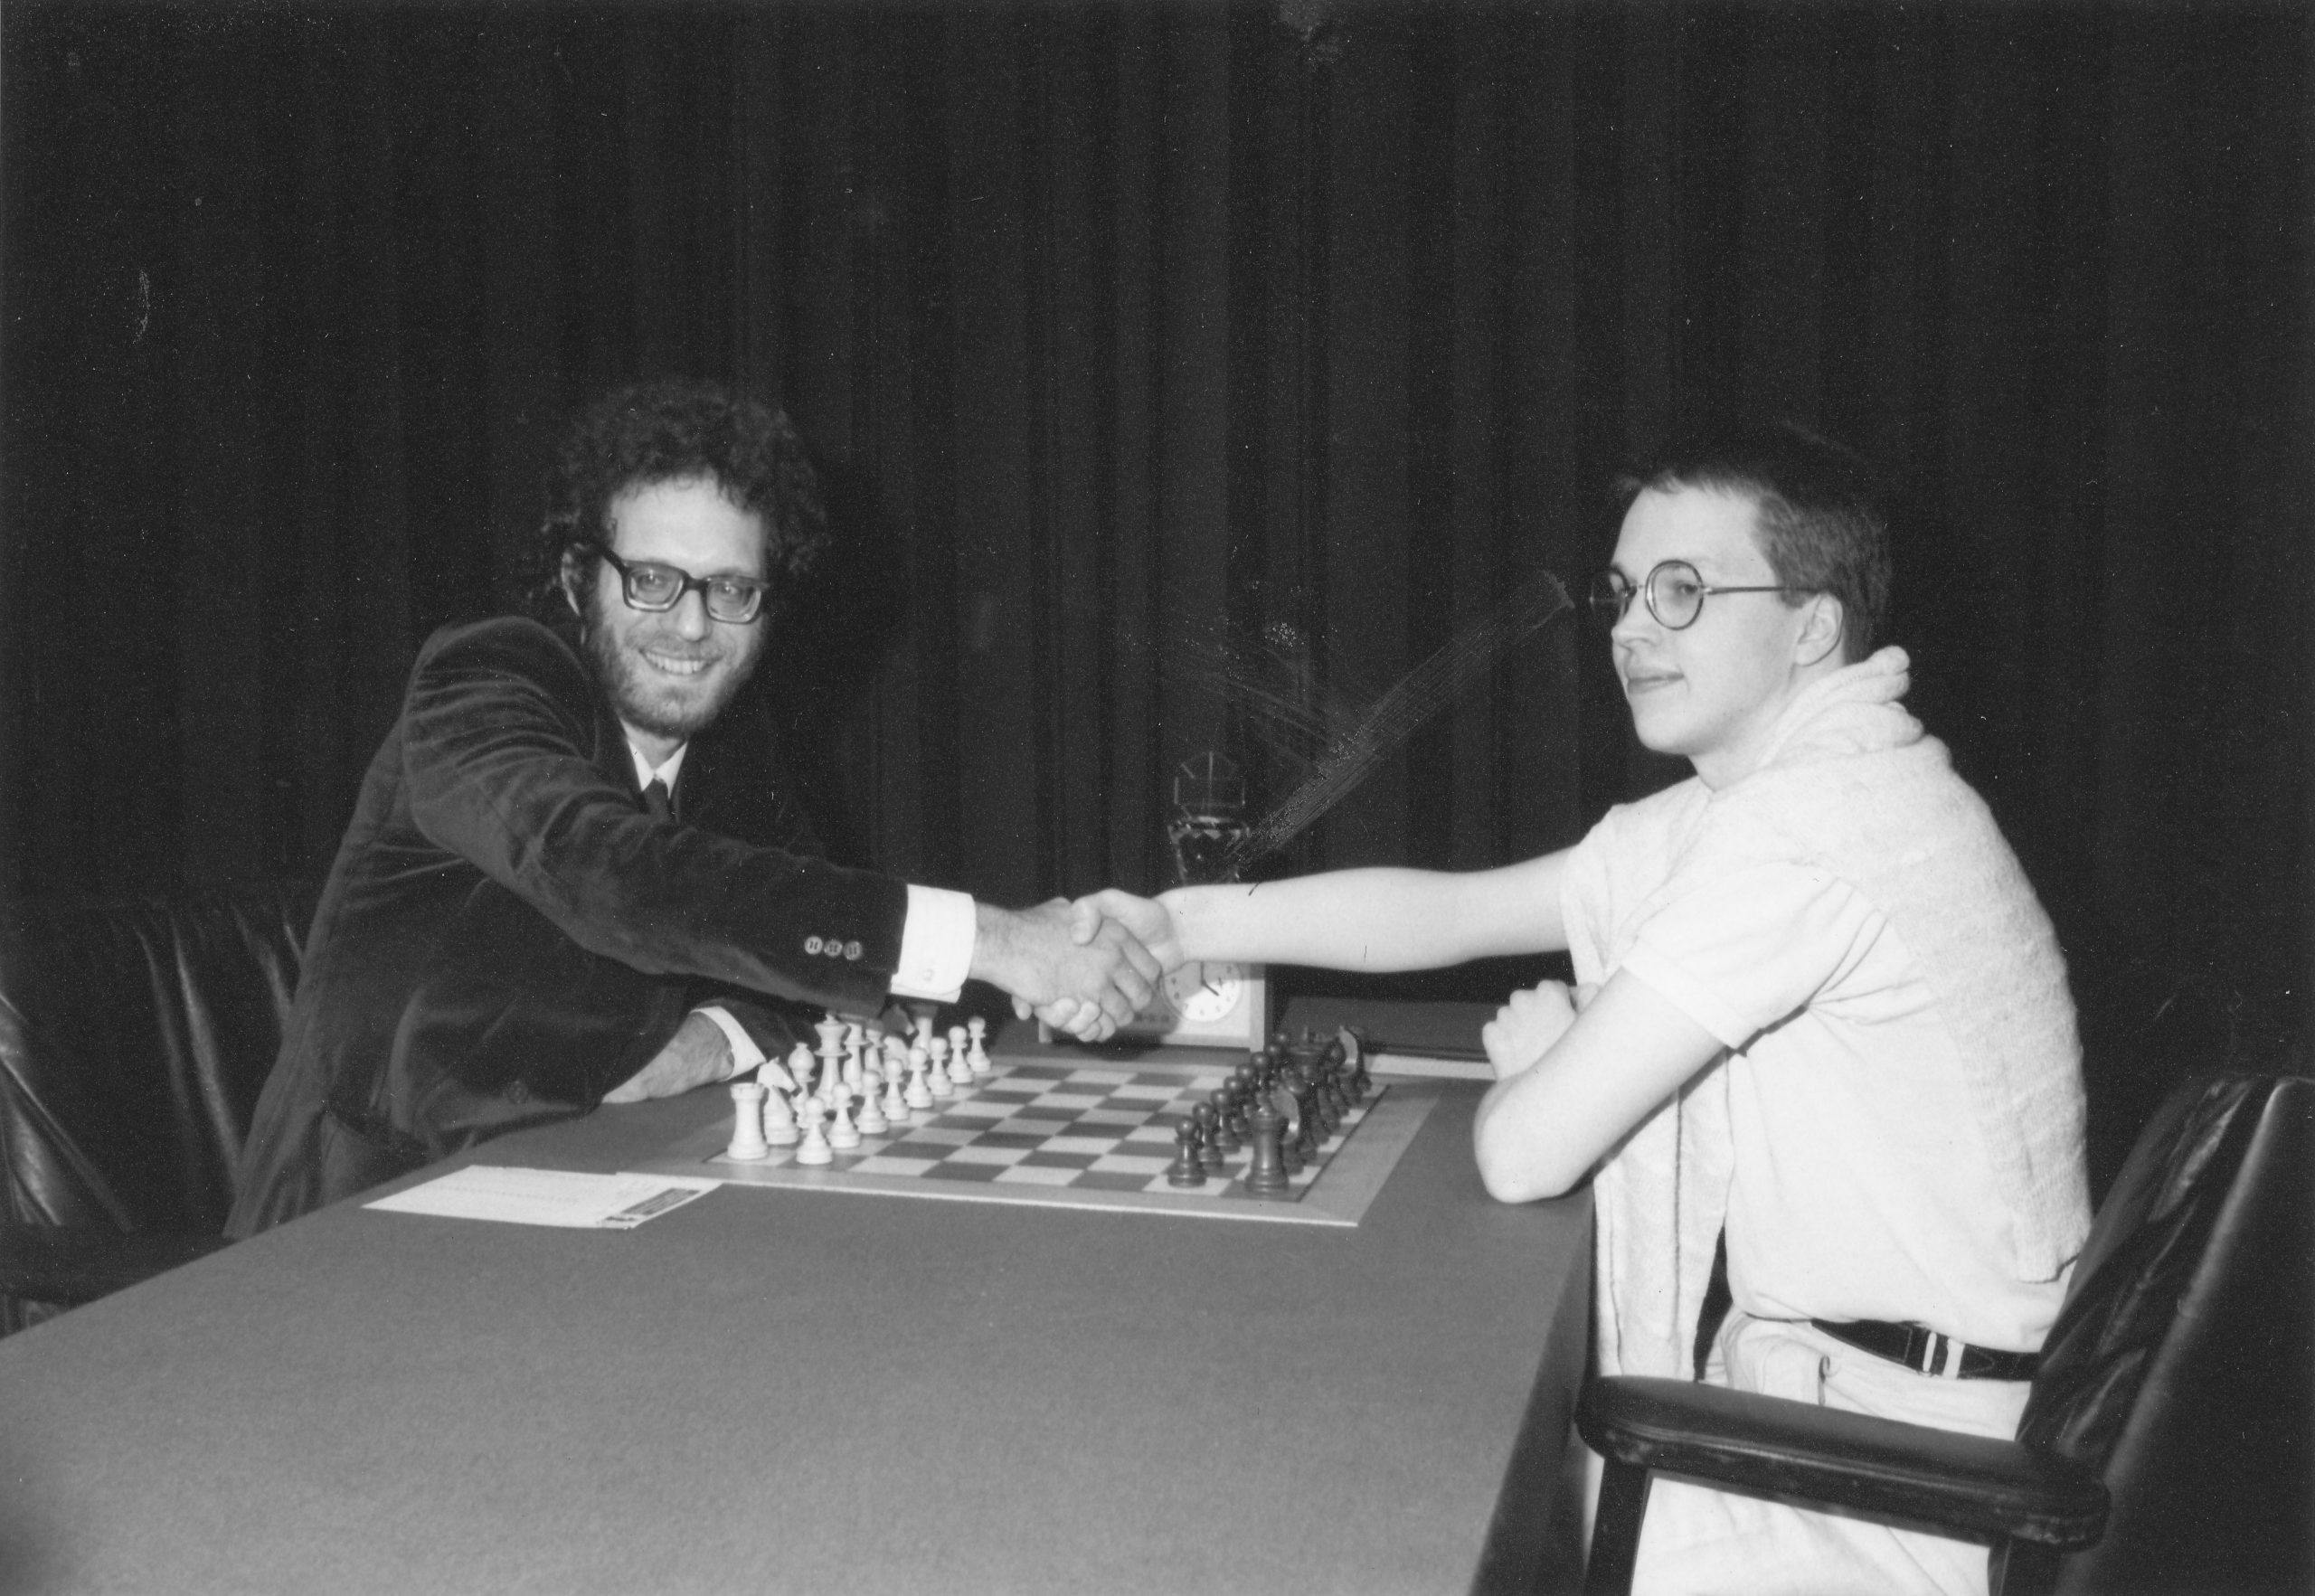 Jon Speelman and Nigel Short at the start of their 1989 Candidates match. Jon won 3.5 - 1.5